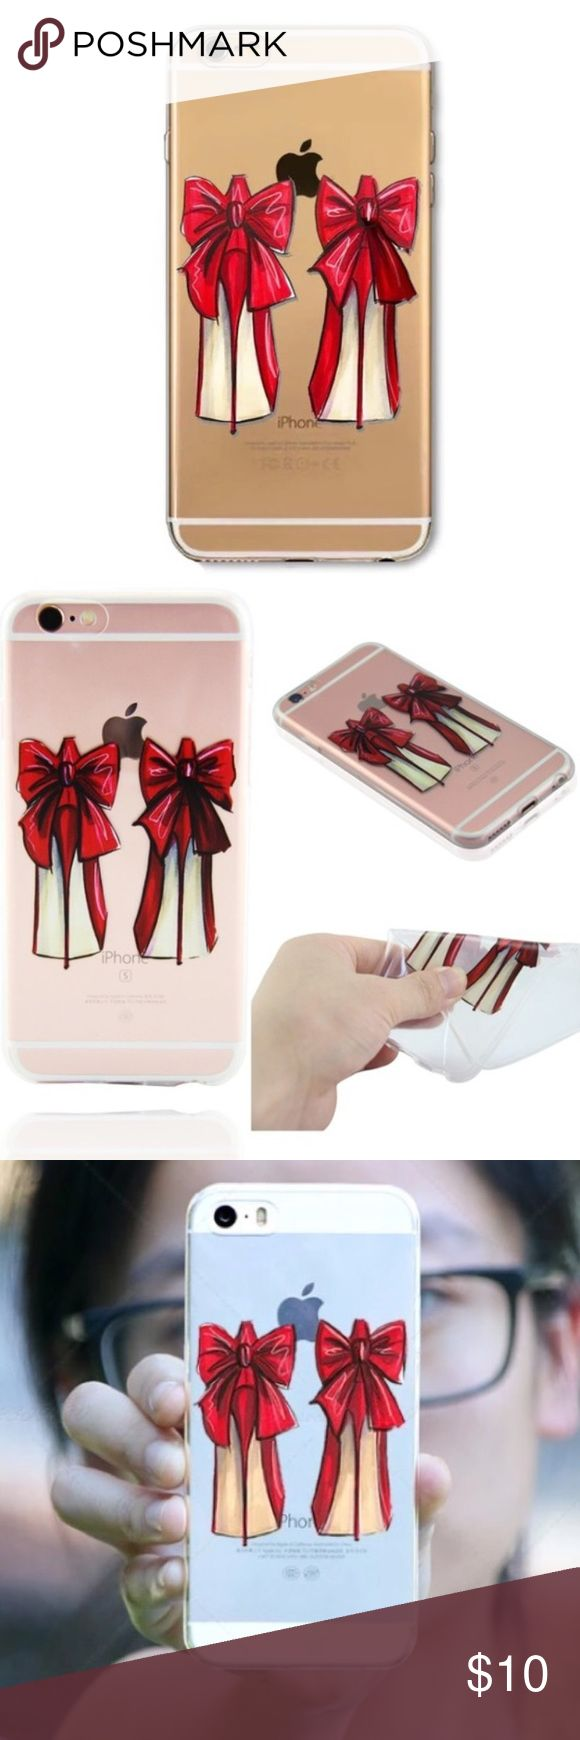 SOFT CASE FOR IPHONE 6 6S  BRAND NEW SOFT CASE FOR IPHONE 6 6S AND IPHONE 6 PLUS  BRAND NEW ❤️ PLEASE SELECT THE CORRECT SIZE Christian Louboutin Accessories Phone Cases